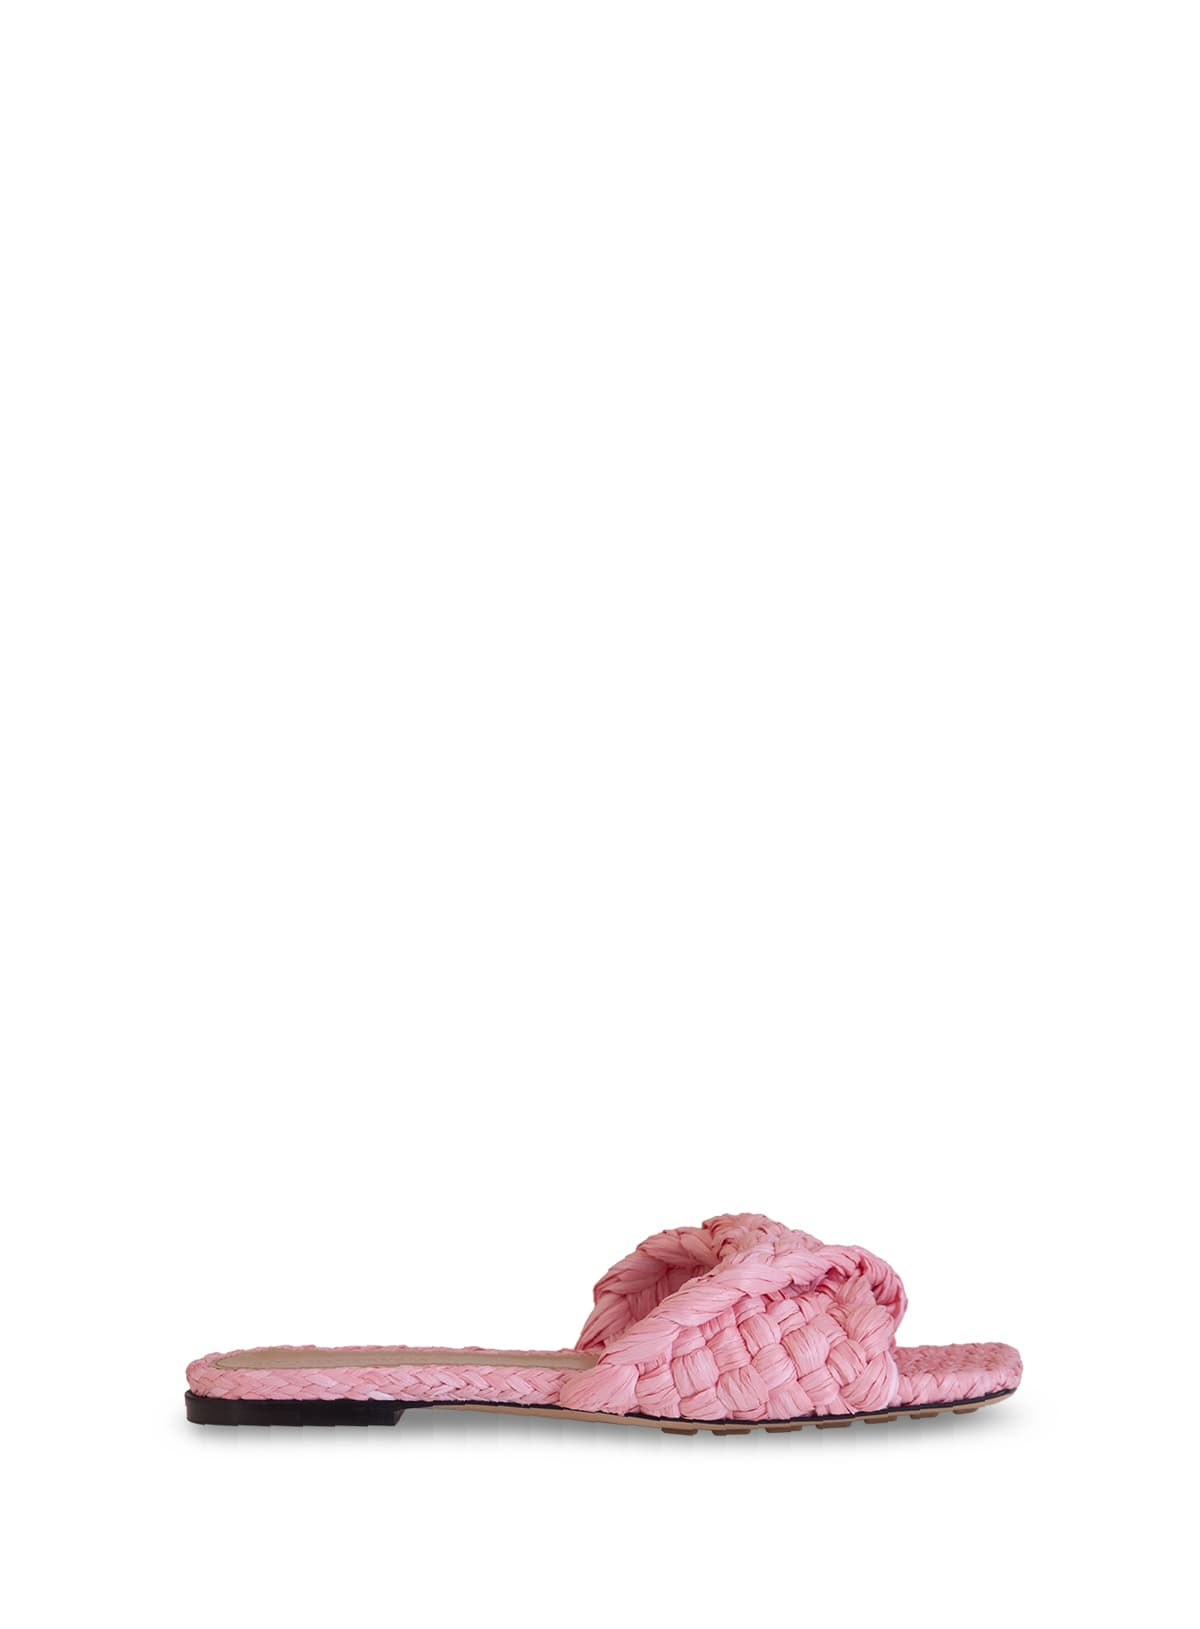 Bottega Veneta STRETCH FLAT SANDALS